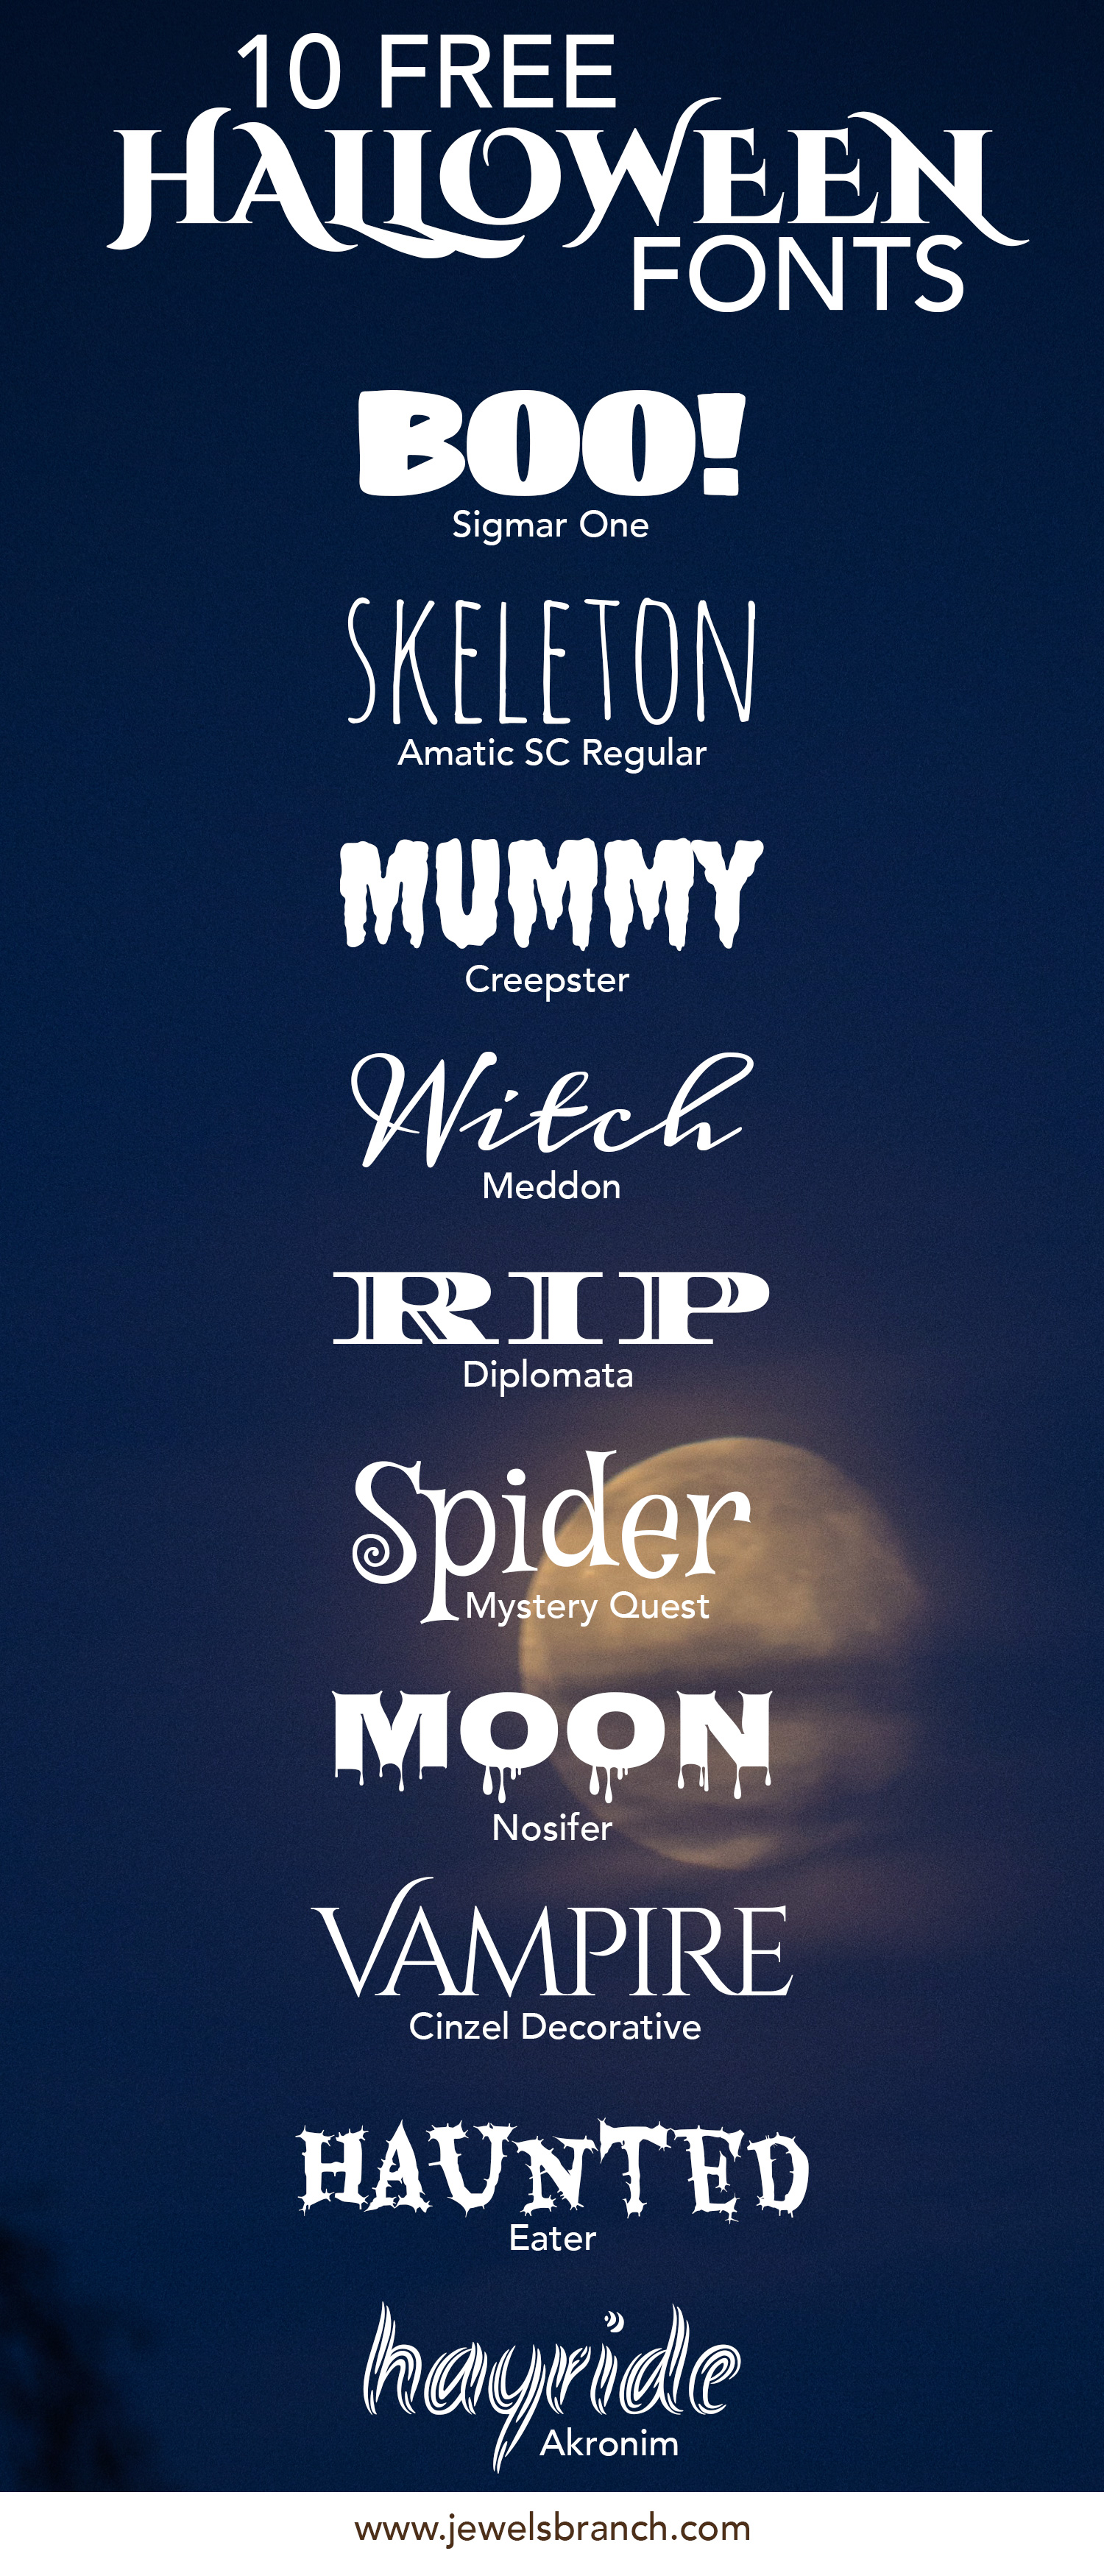 HalloweenFonts